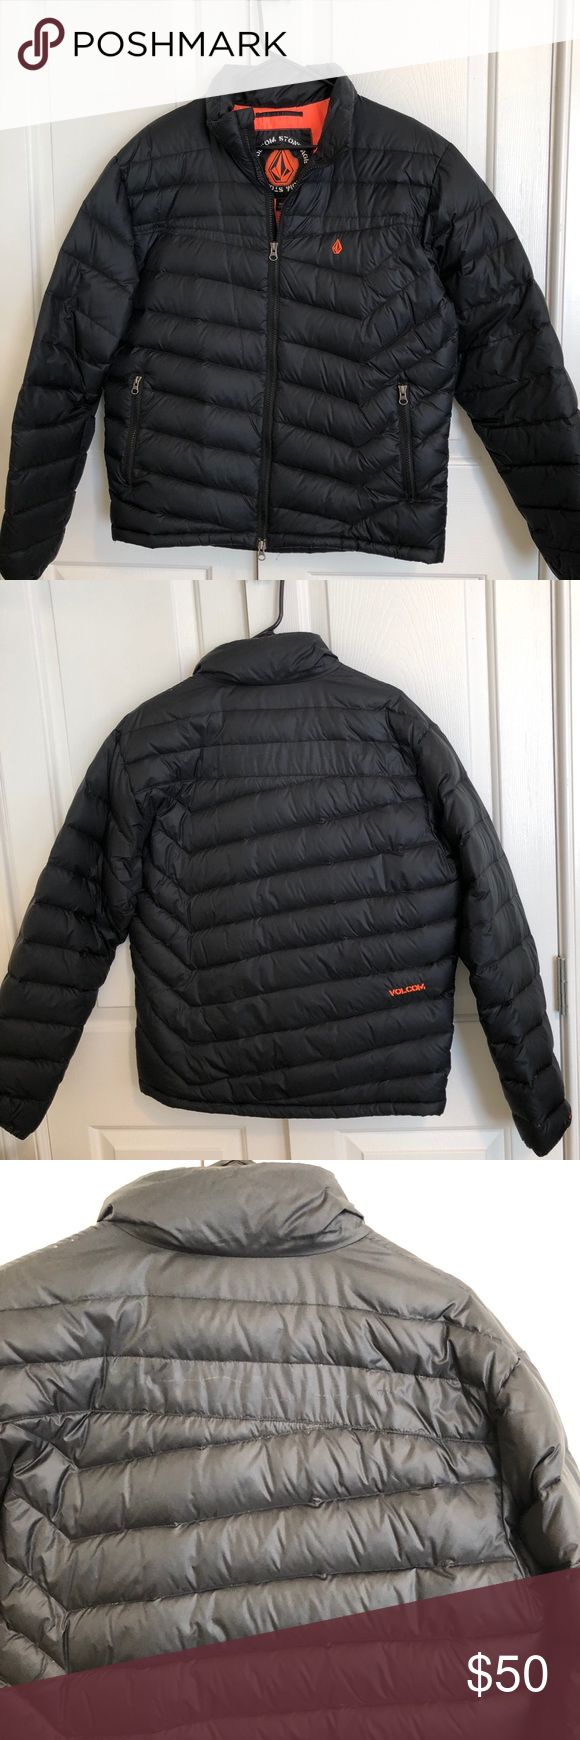 Volvo's Puffy Jacket Black puffy down jacket. Orange lining.  See image for materials.  Only worn and few times, and in almost new condition other than a small scratch on the back (from another metal hanger). It's actually not as noticeable as it looks like in the photo. Great time of year for this warm jacket and such a great price and will take offers! Volcom Jackets & Coats Puffers